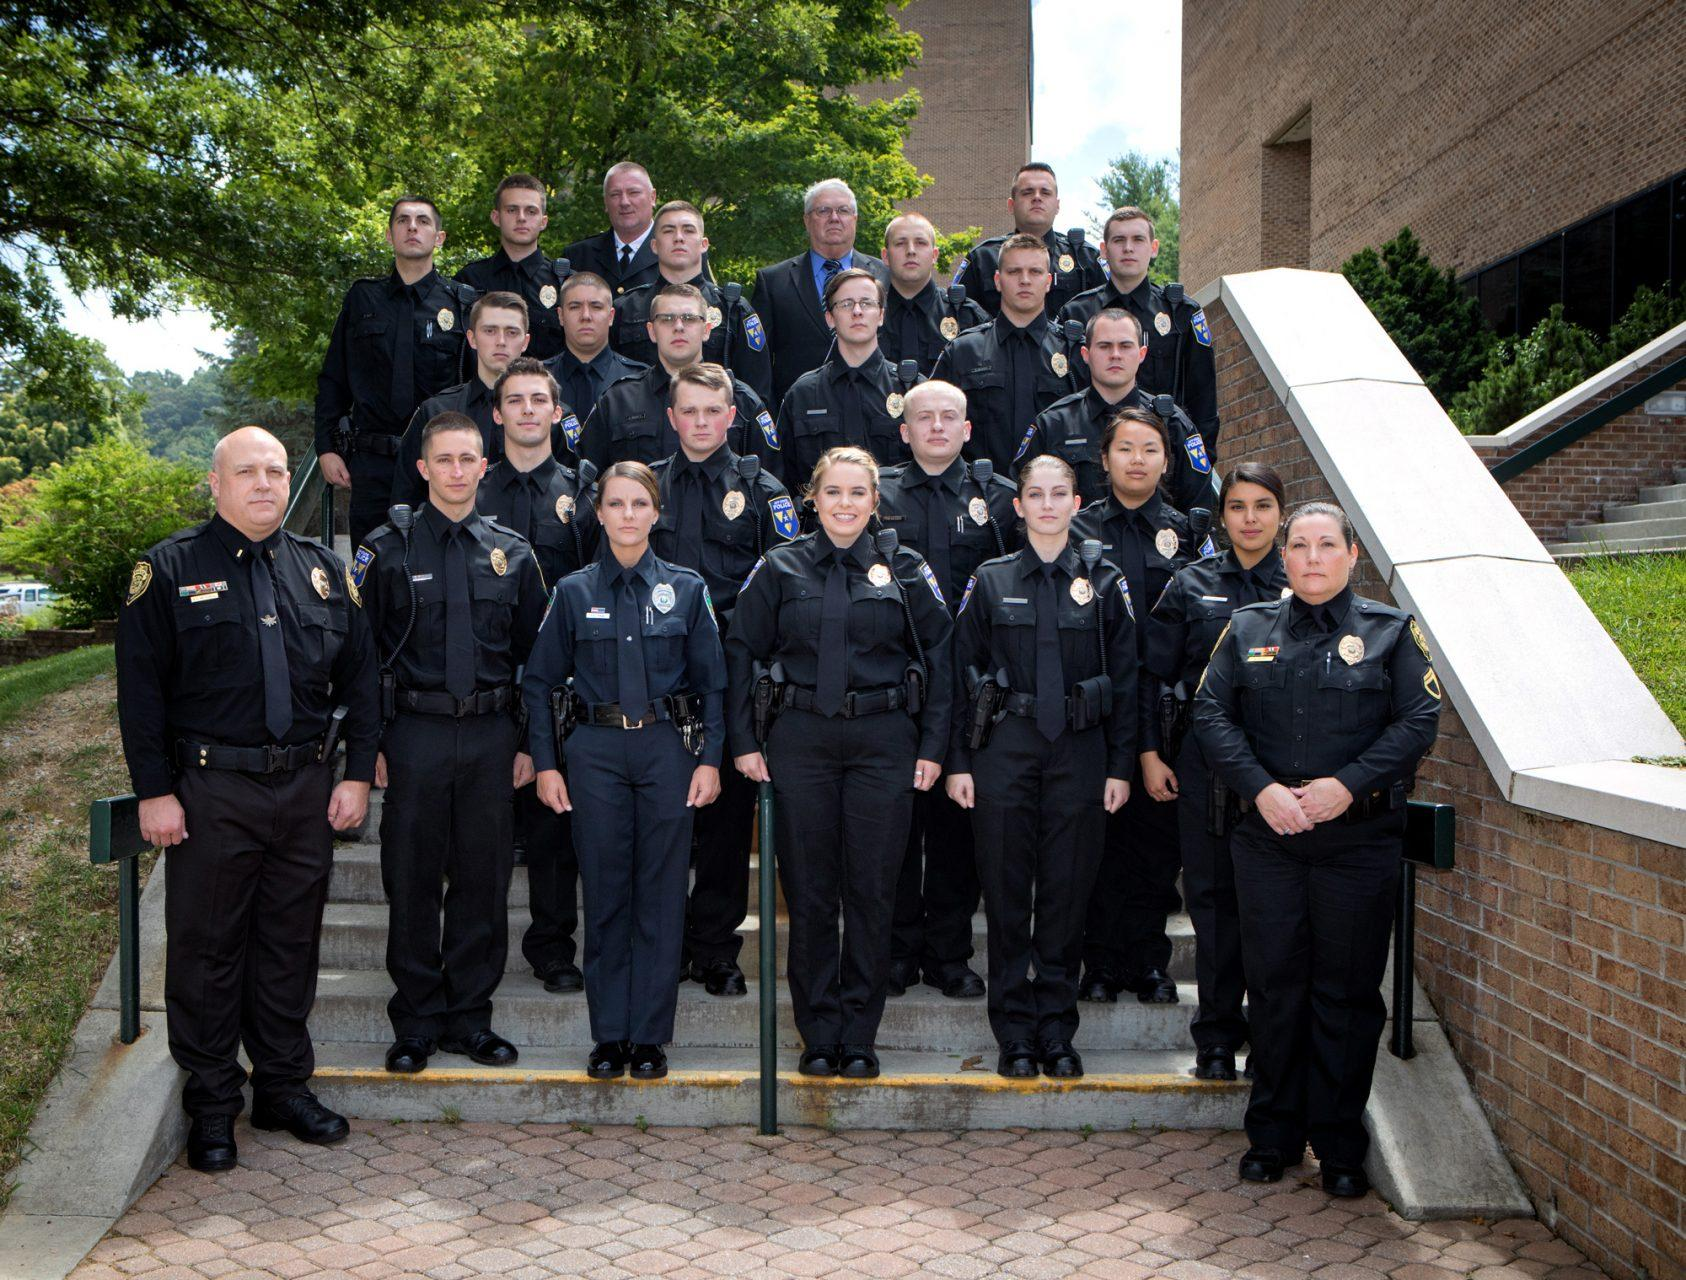 Former police cadets reflect on law enforcement training